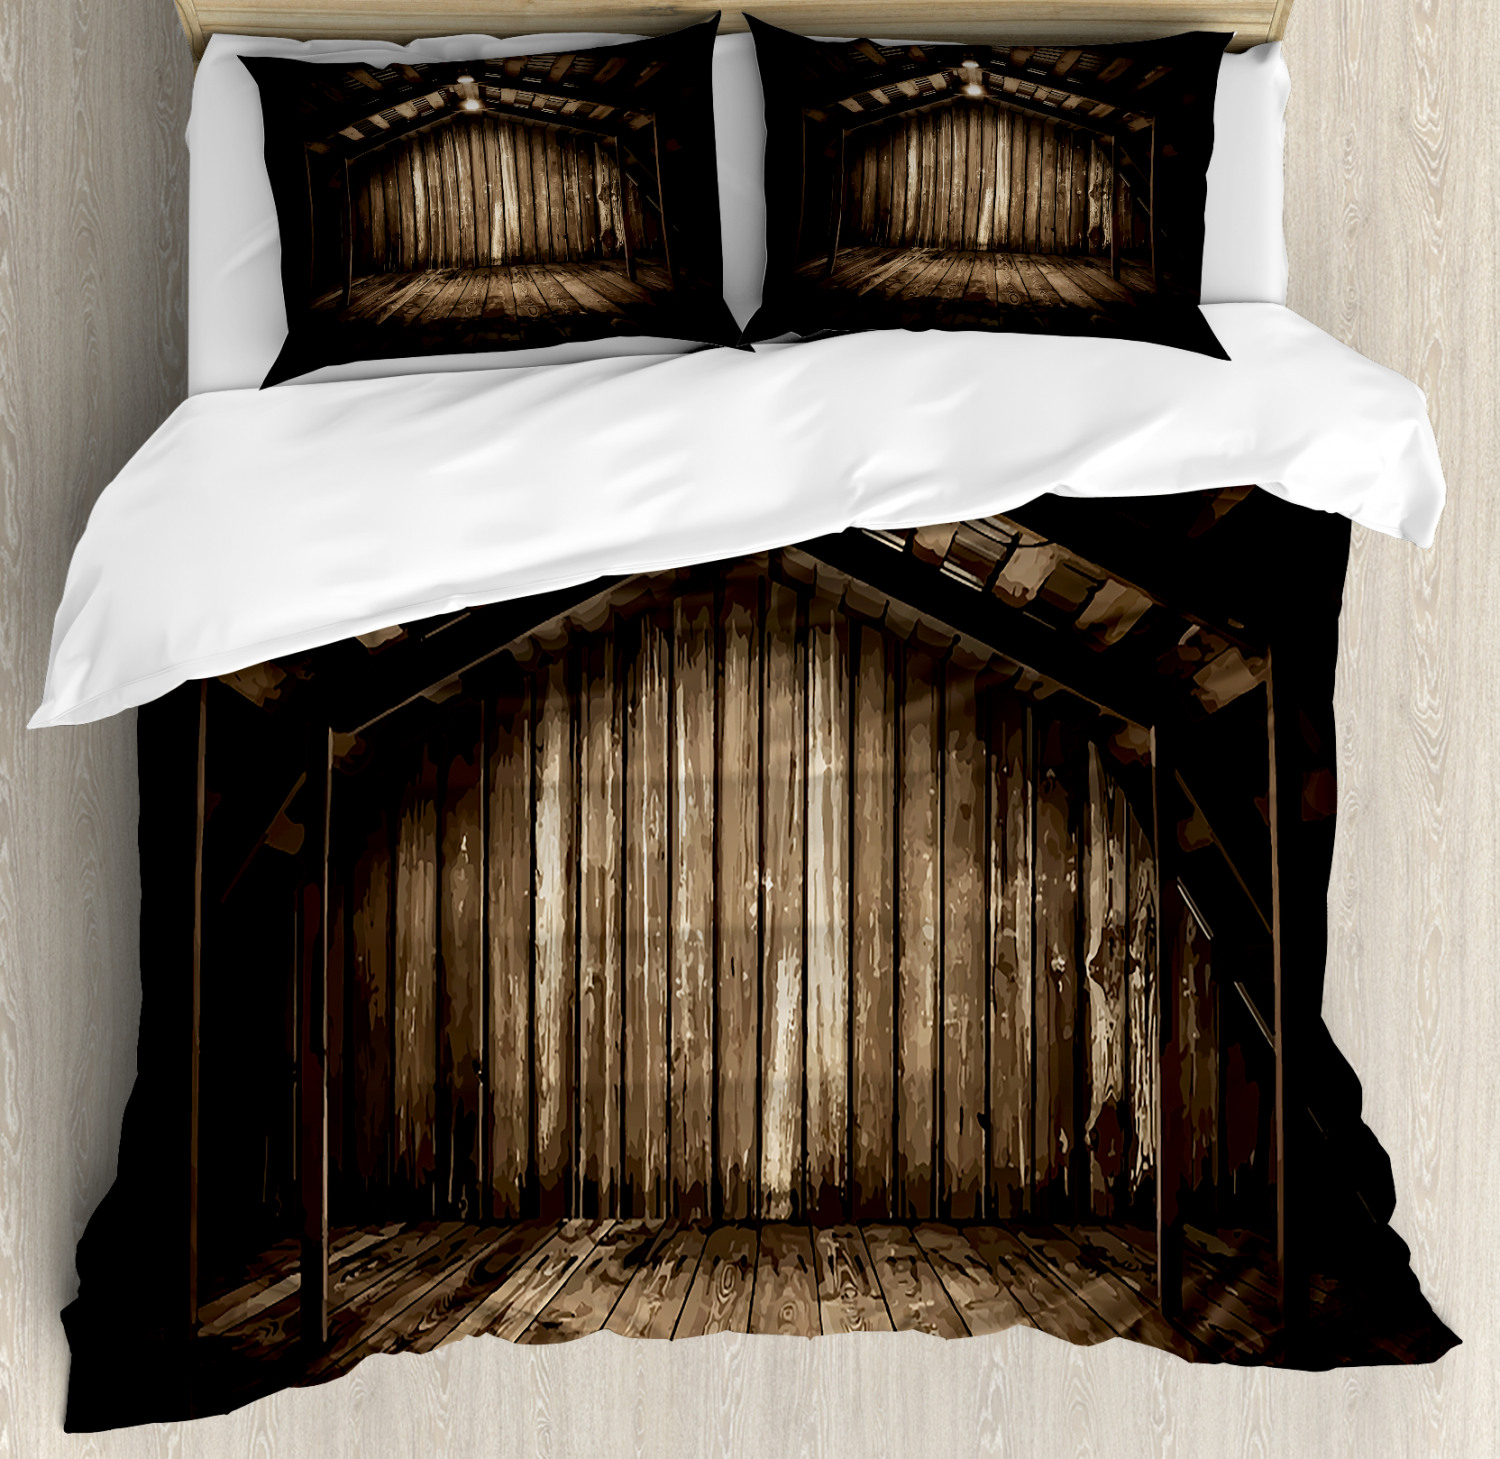 Rustic Duvet Cover Set with Pillow Shams Wooden Cottage Print